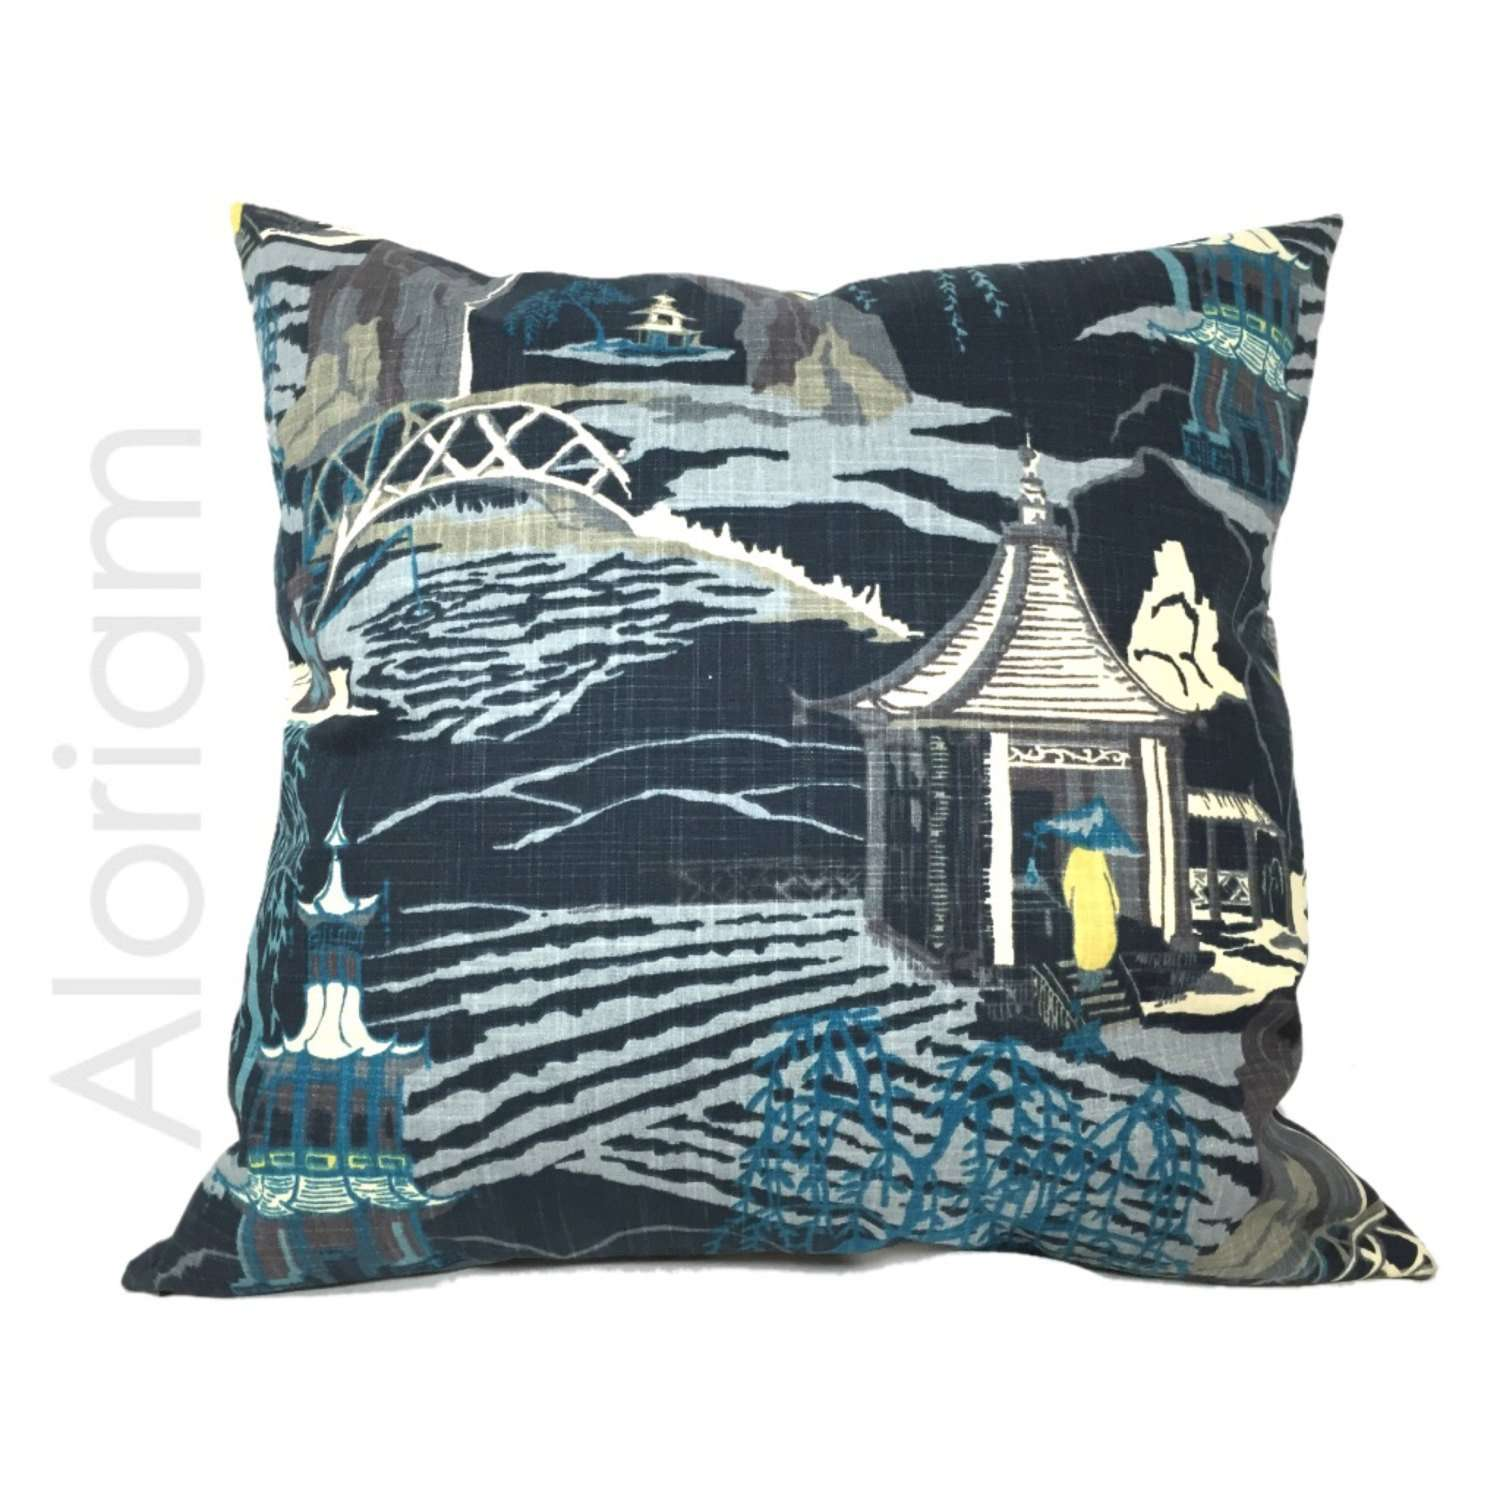 Robert Allen Neo Toile Chinoiserie Pillow Cover in Indigo Blue by Aloriam